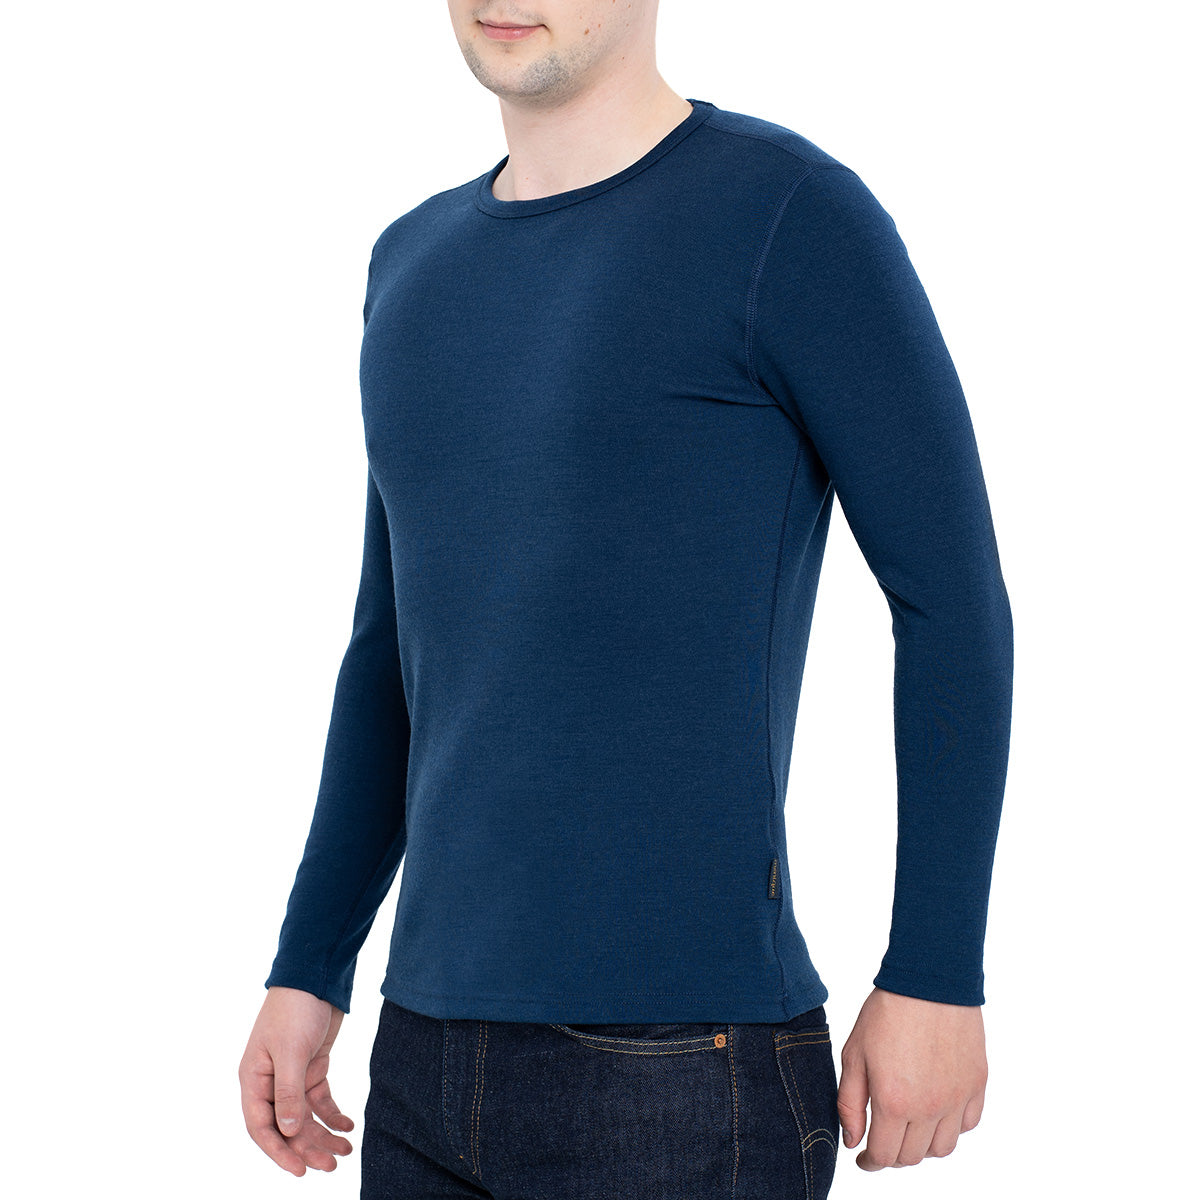 menique Men's Merino 250 Long Sleeve Crew Dark Blue Color